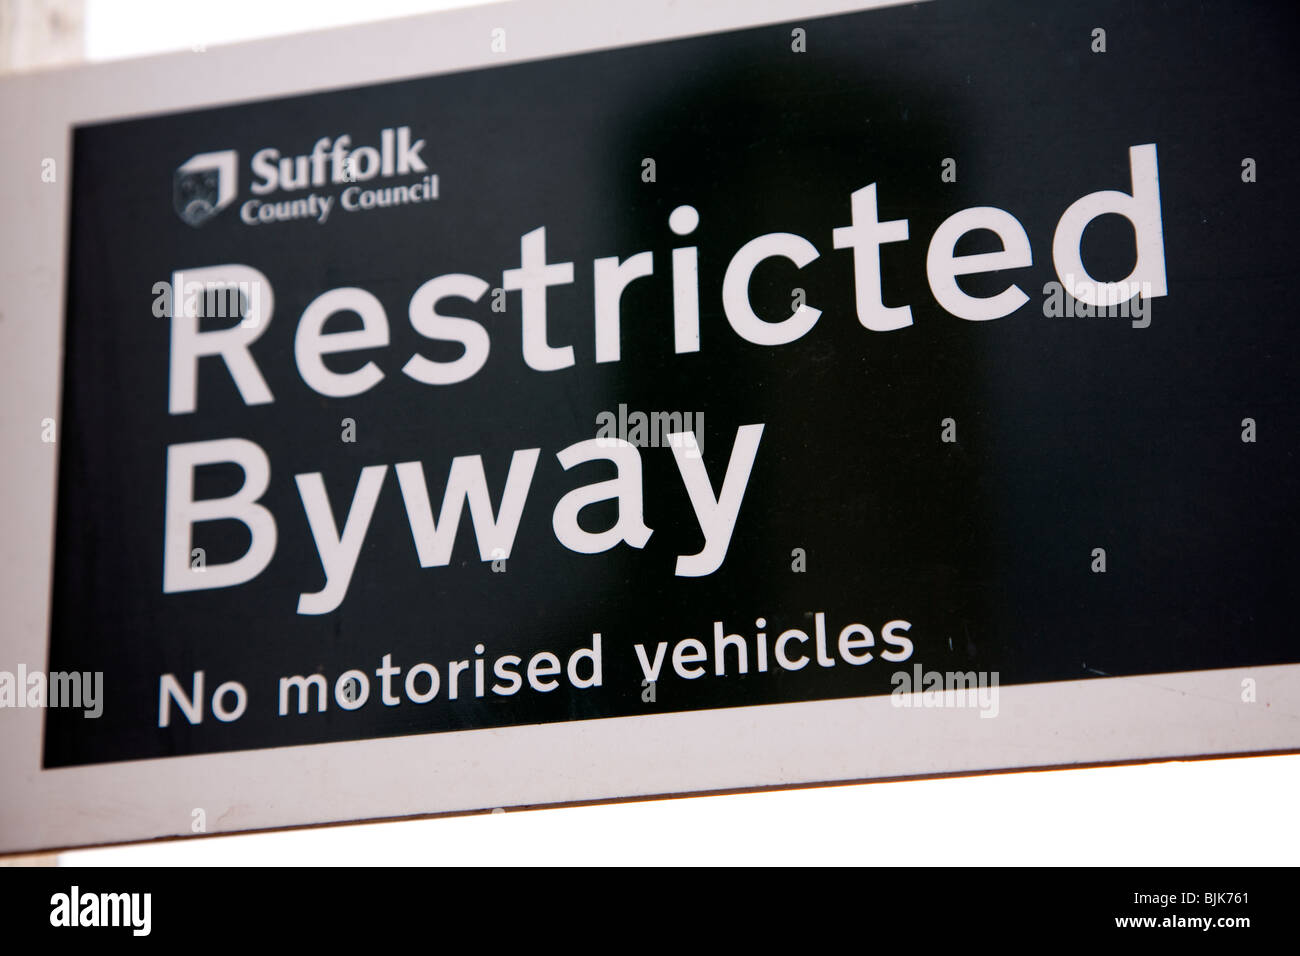 Restricted Byway sign No motorised vehicles - Stock Image